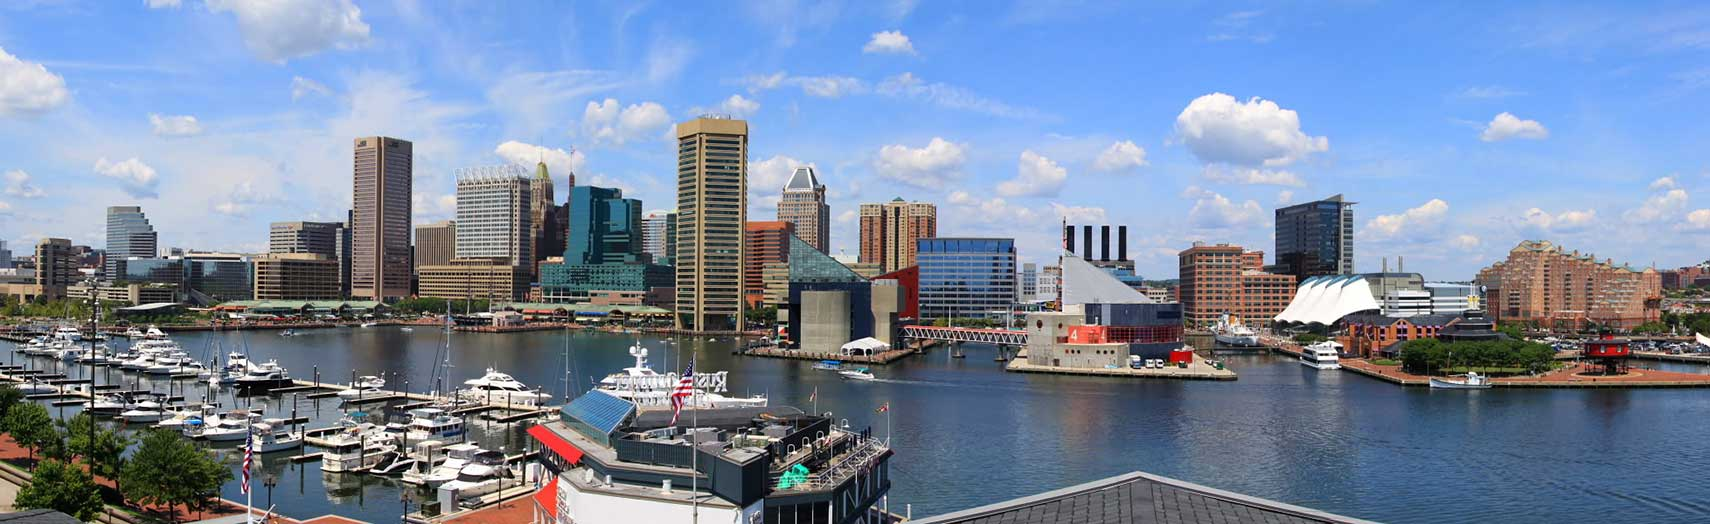 Google Map of Baltimore, Maryland, USA - Nations Online Project